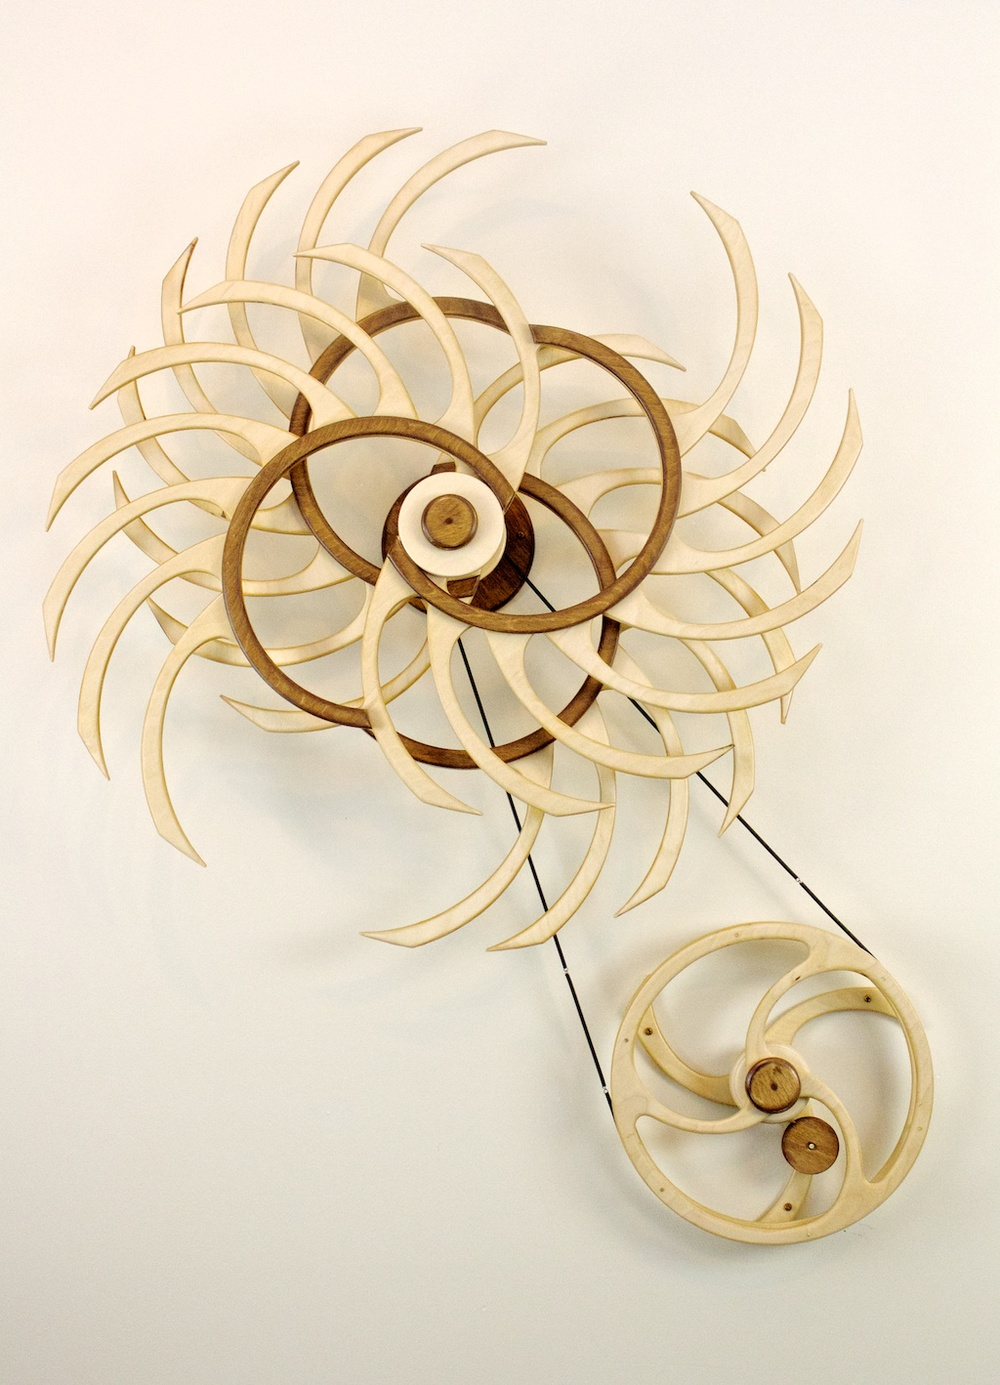 Aztec Kinetic Sculpture by David C Roy 4.jpg